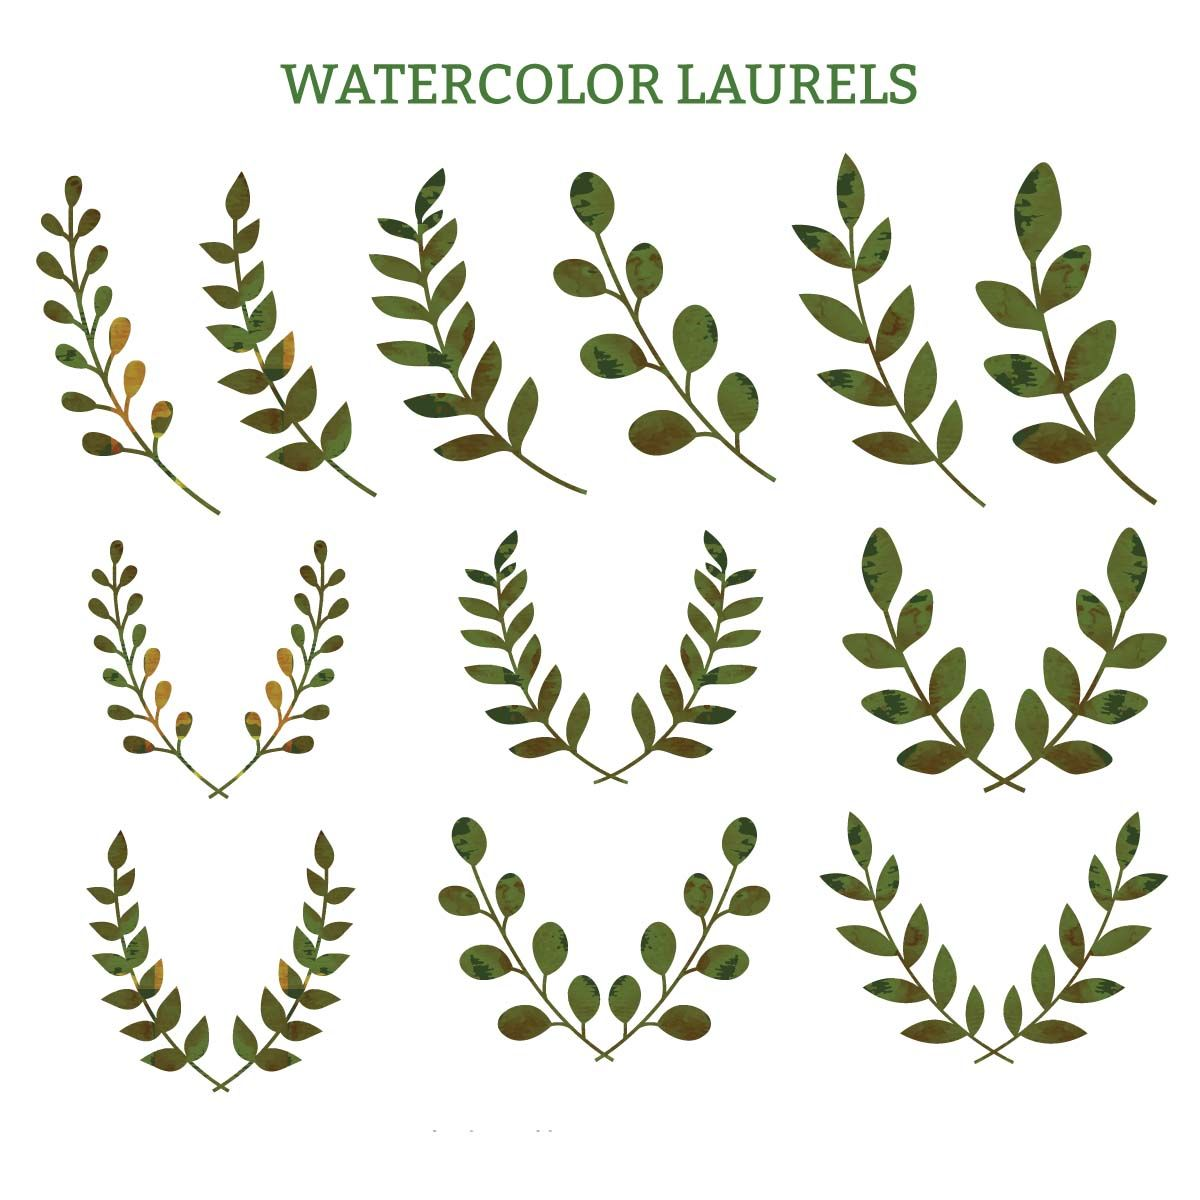 Watercolor Laurels Green Decorative Vector Wreath Watercolor